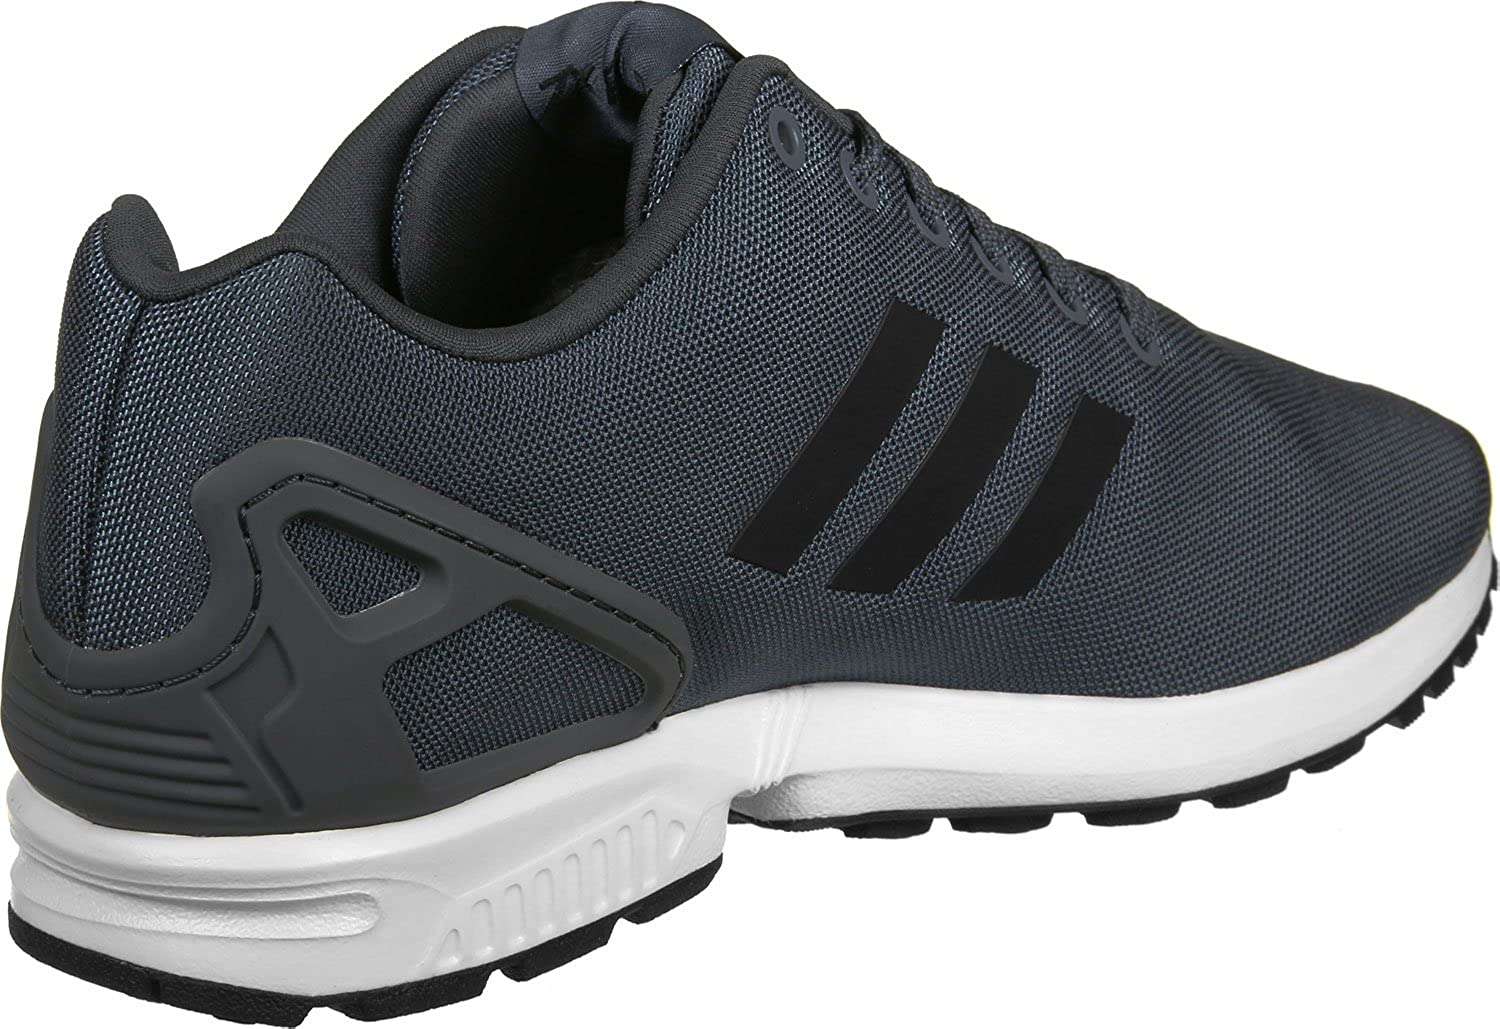 Grey White adidas Men's Zx Flux Trainers